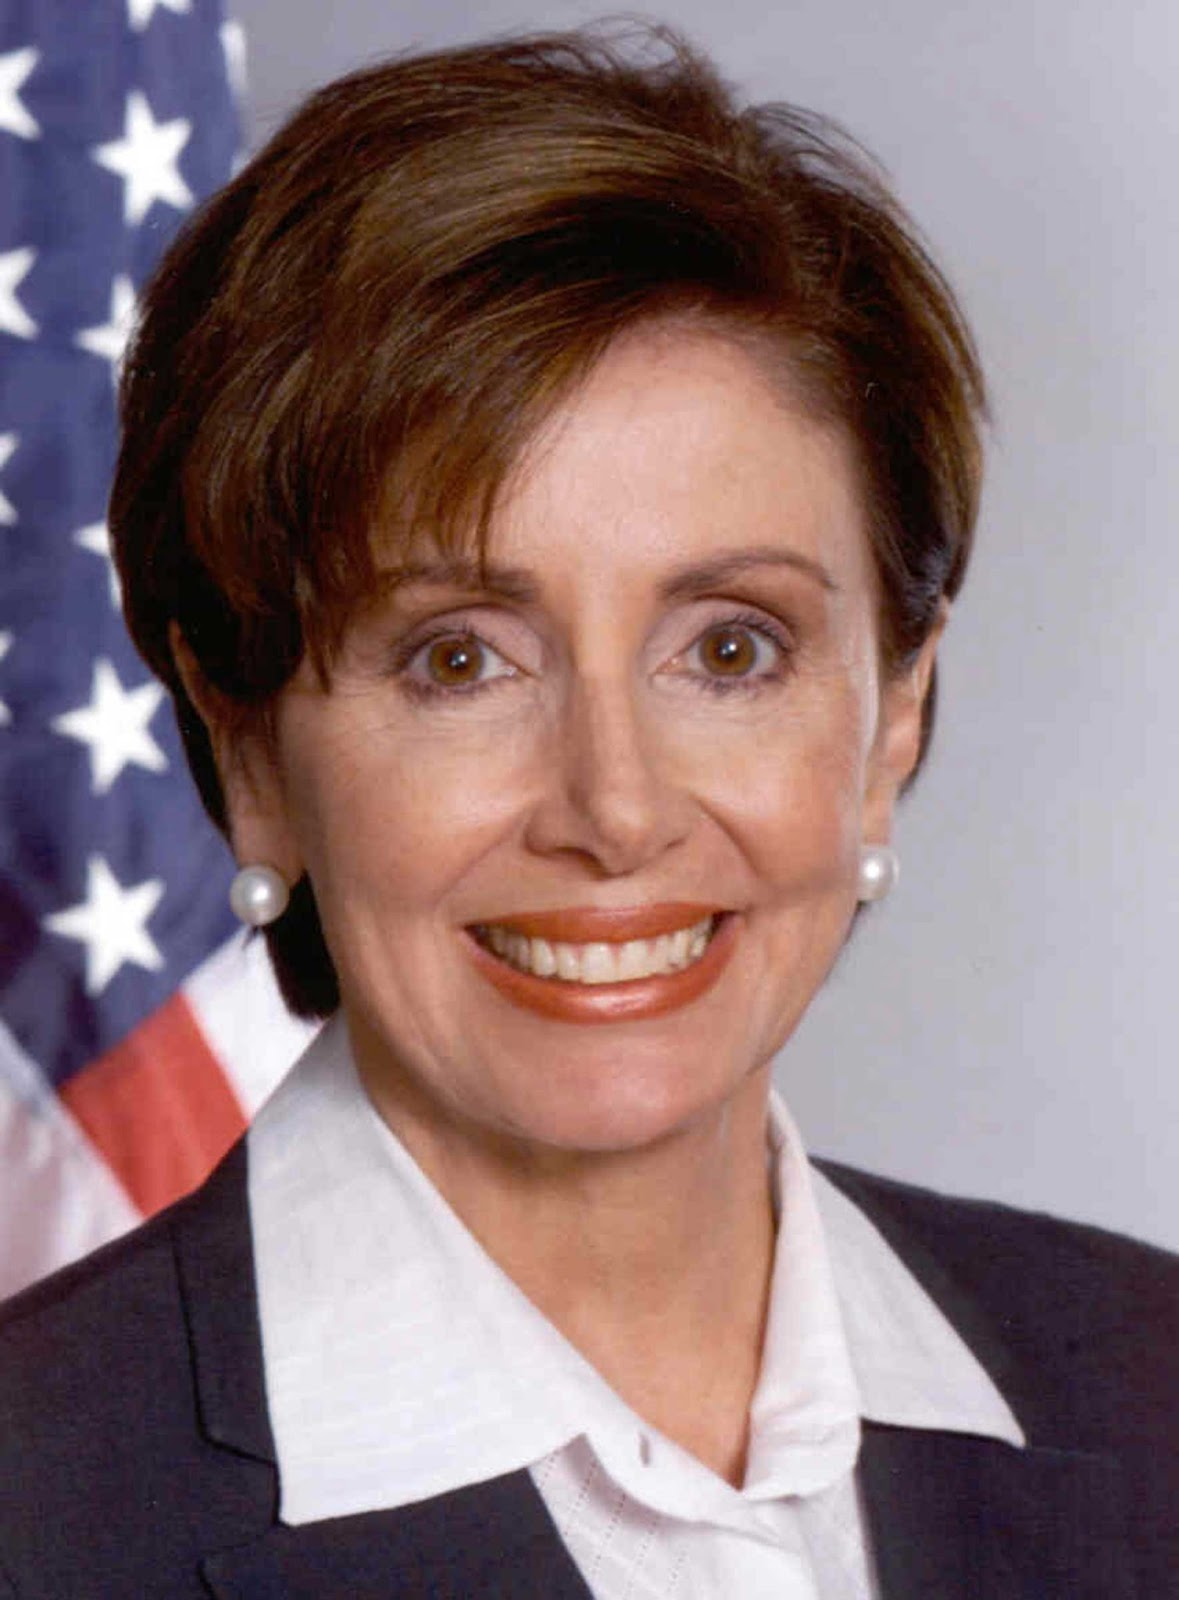 nancy pelosi pictures hd wallpapers pics. Black Bedroom Furniture Sets. Home Design Ideas